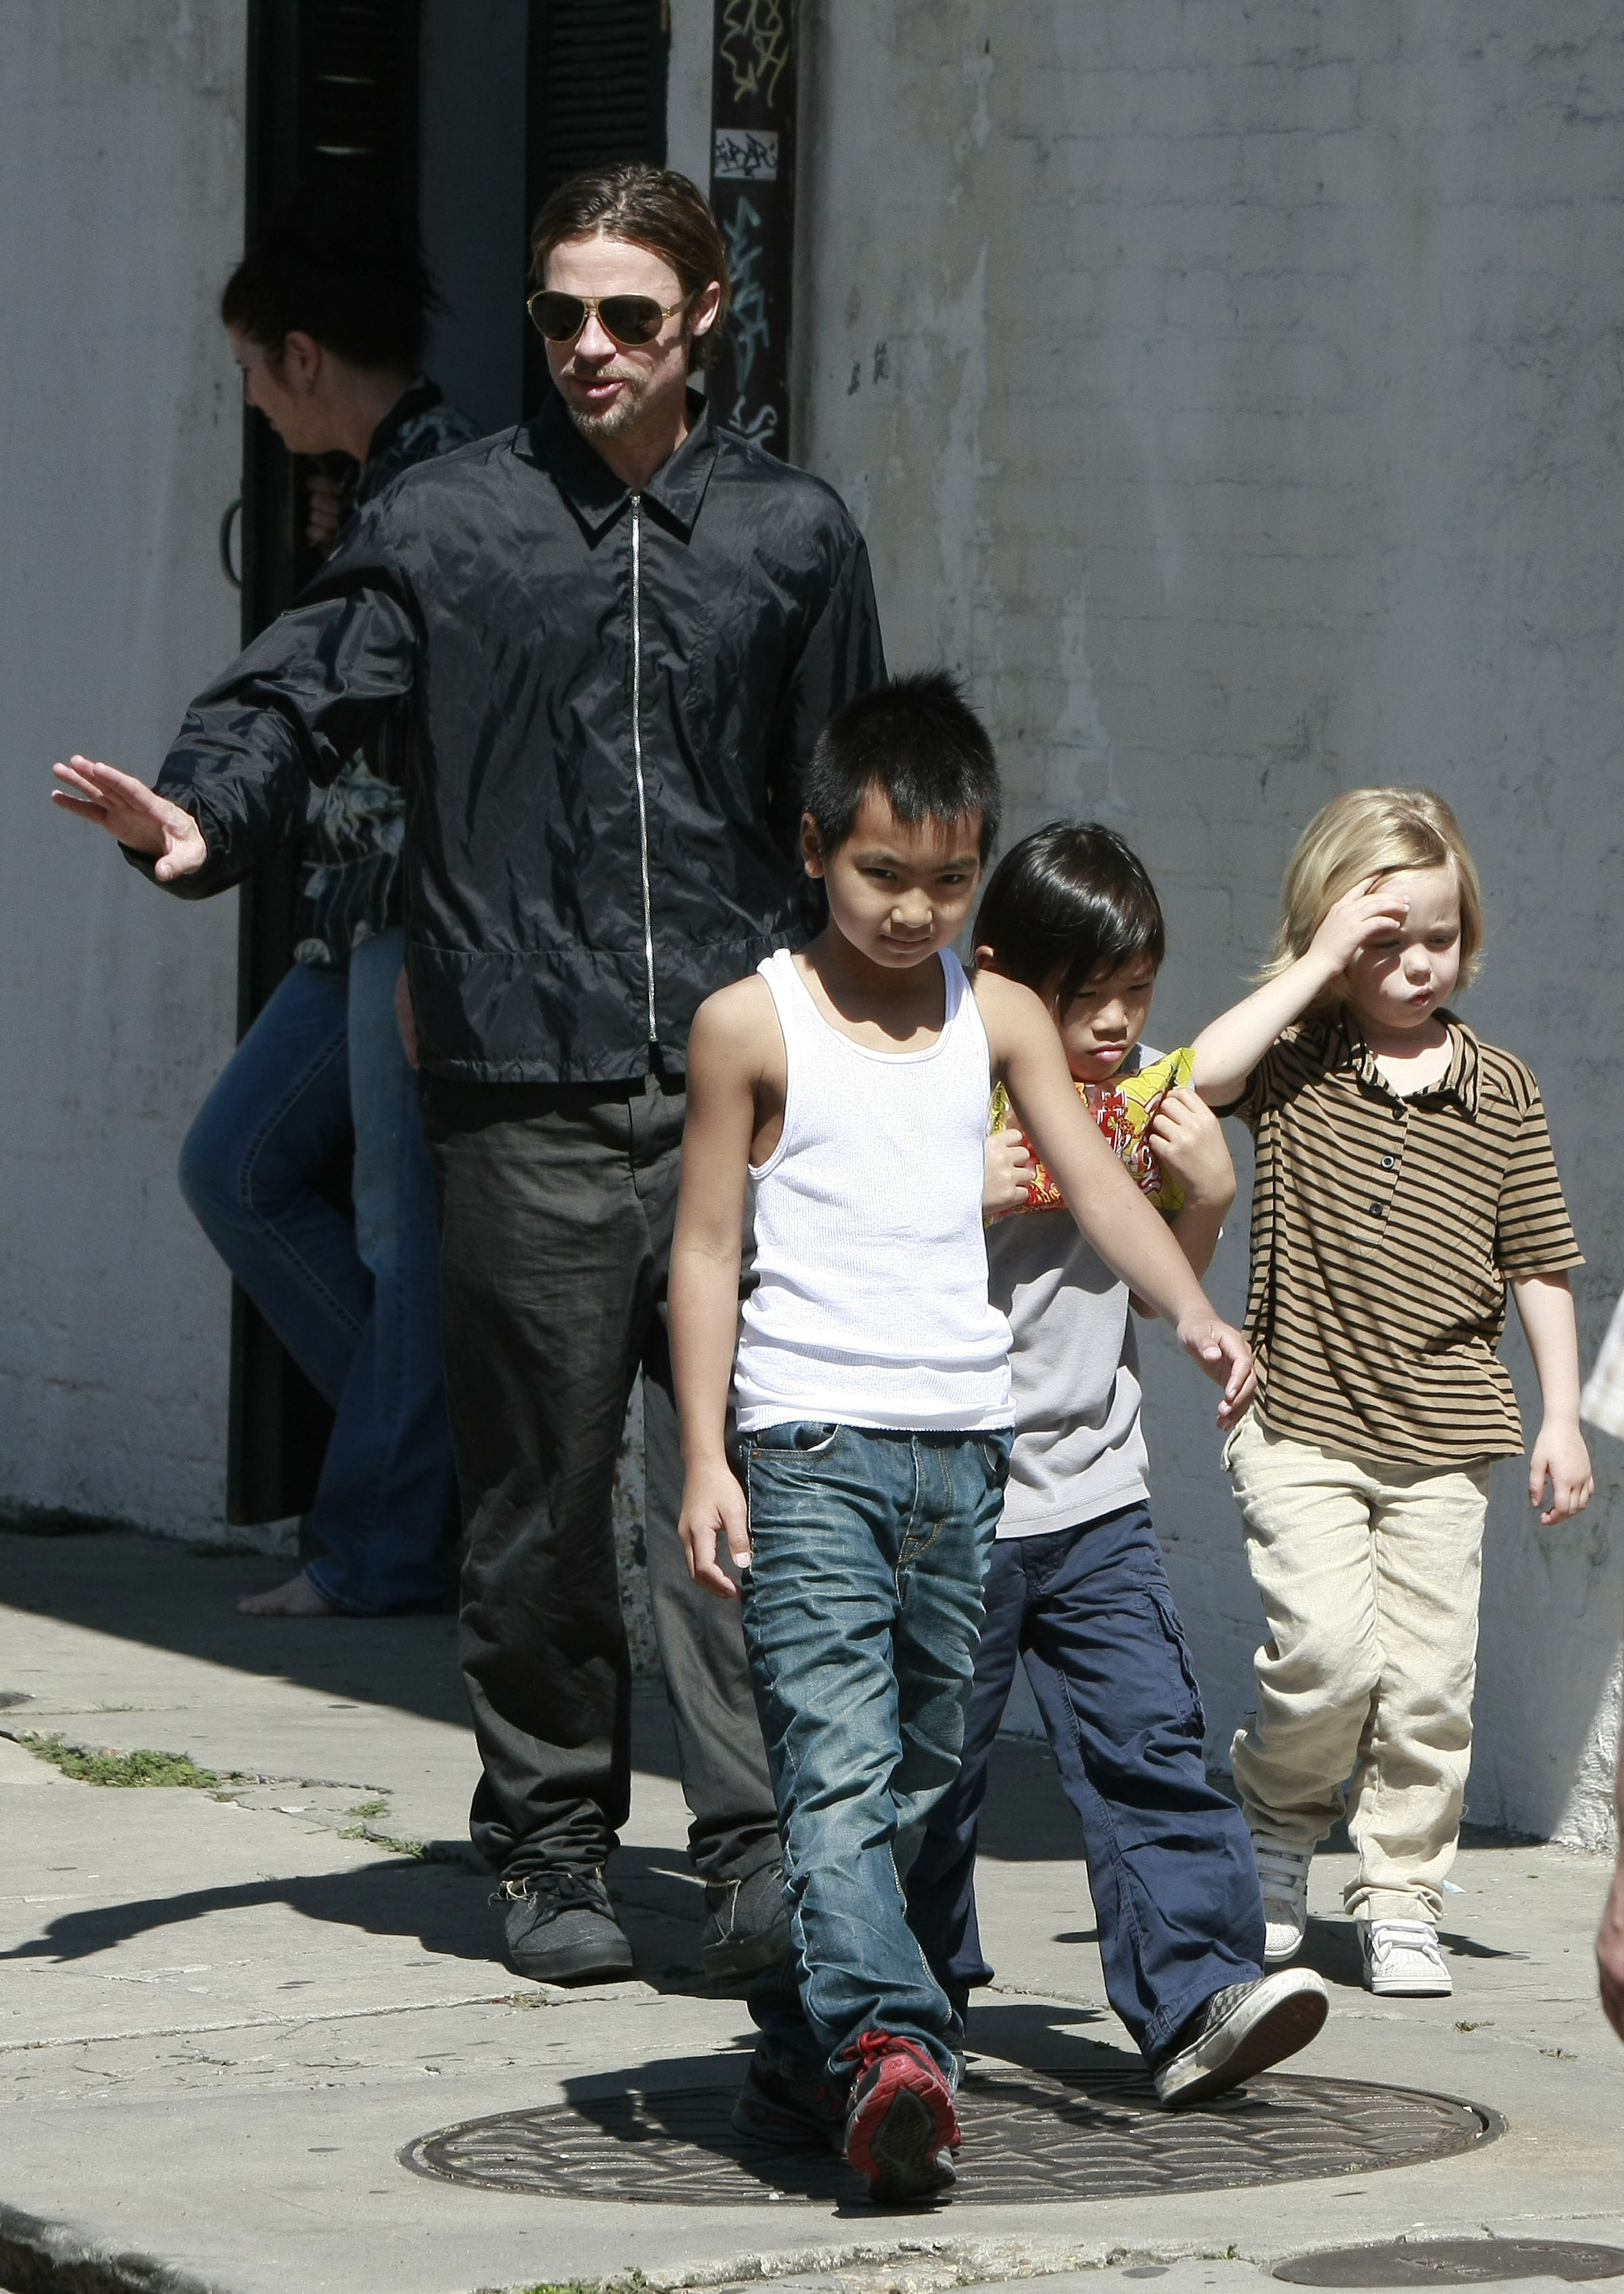 Angelina Jolie's Kids Want To Drop 'Pitt' From Last Name: Brad Pitt Disgusted With Divorce War